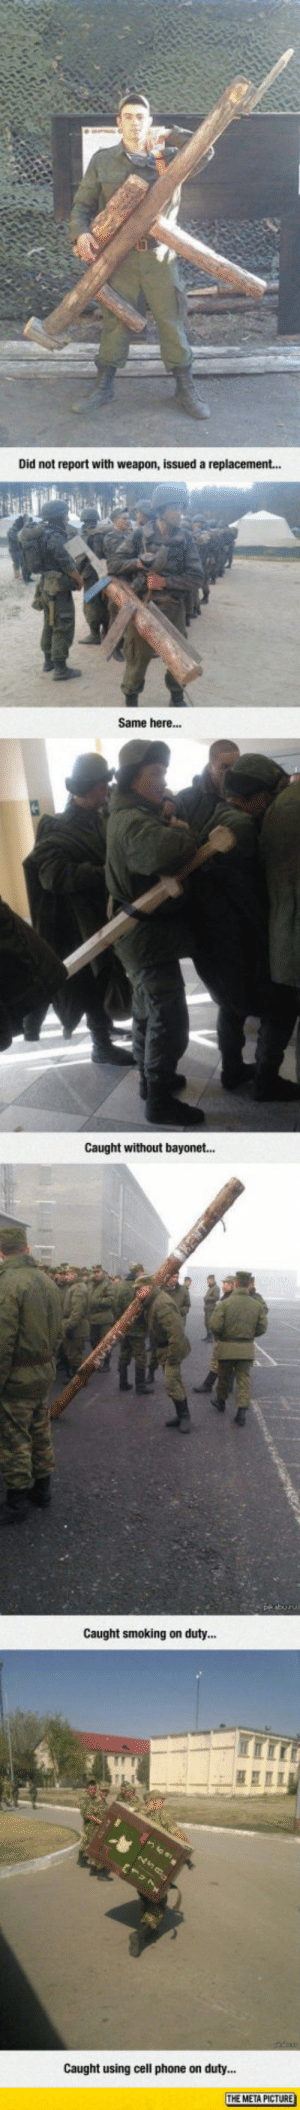 laughoutloud-club:  Russian Army Punishments: Did not report with weapon, issued a replacement...  Same here...  Caught without bayonet...  Caught smoking on dut..  Caught using cell phone on duty... laughoutloud-club:  Russian Army Punishments